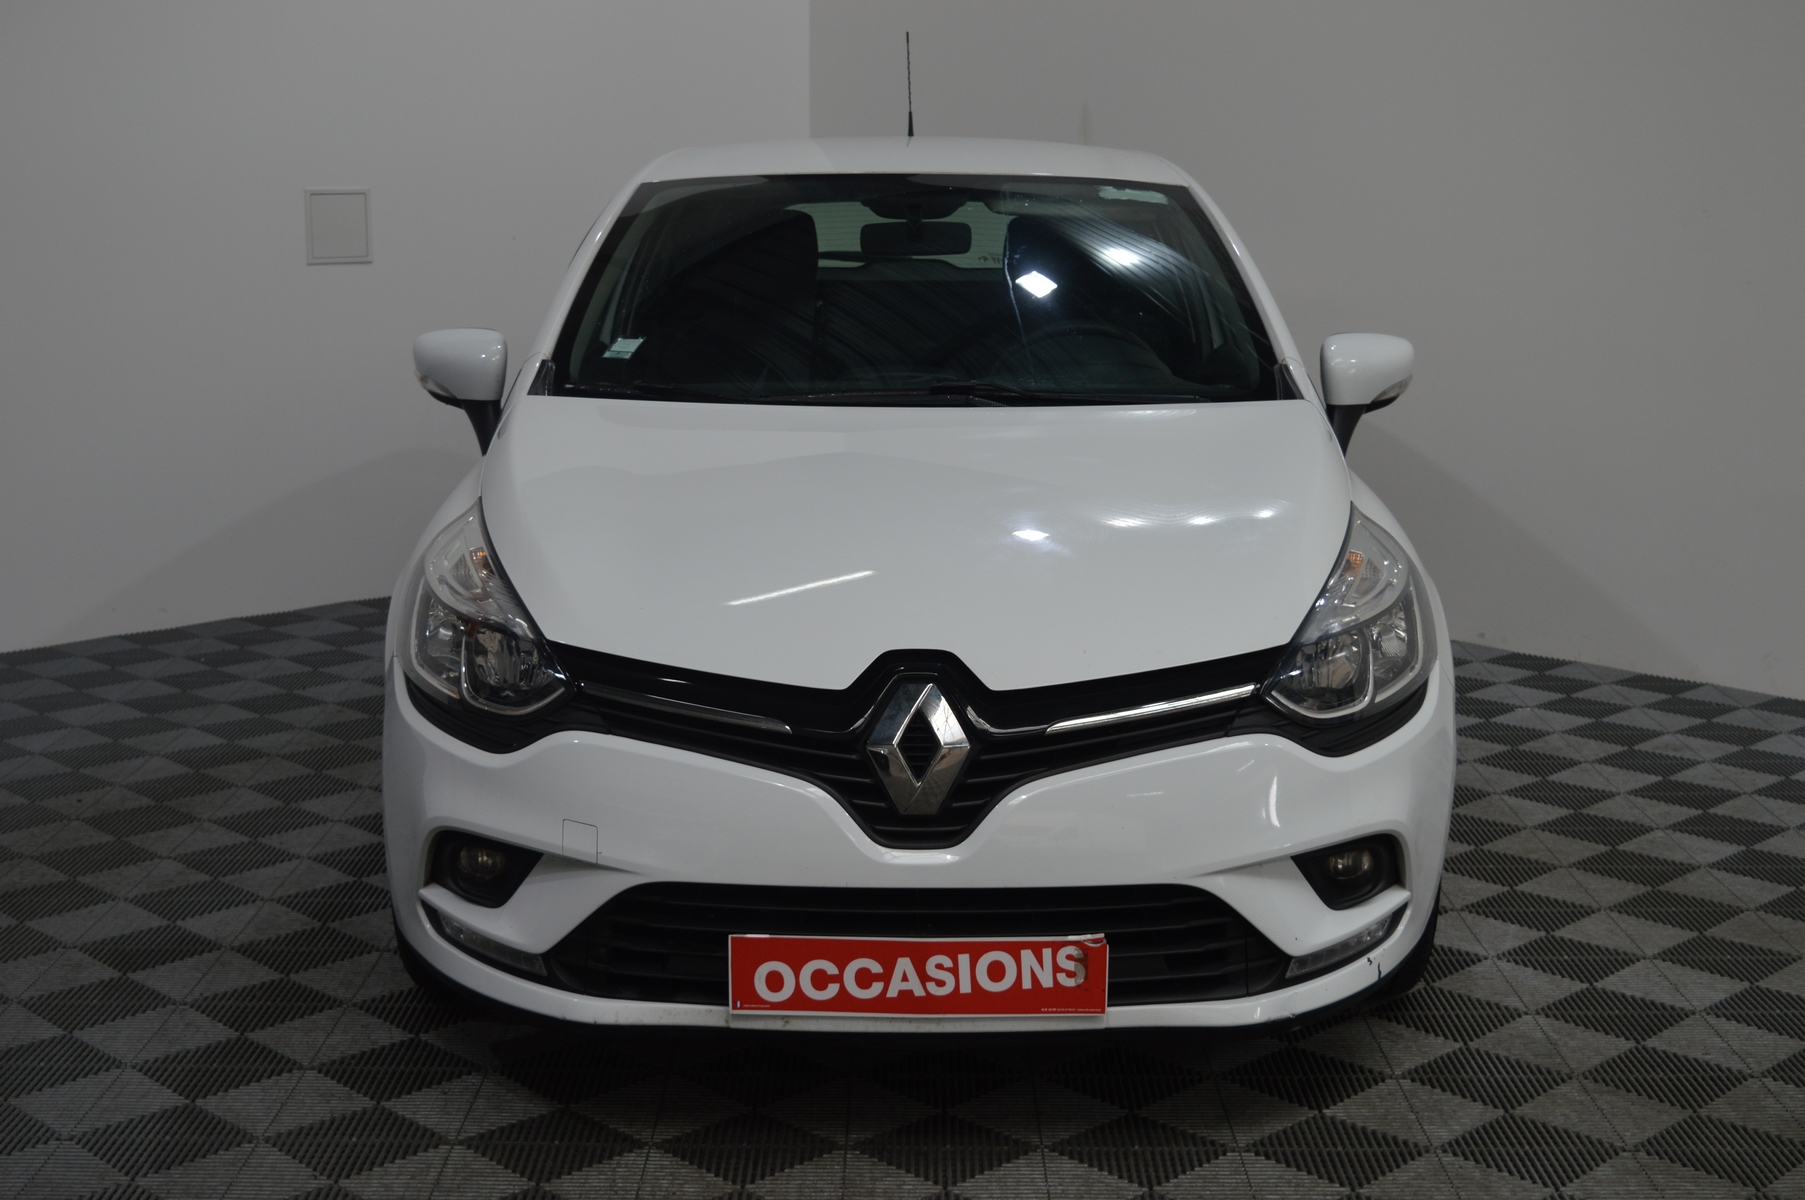 RENAULT CLIO IV SOCIETE 2018 à 7400 € - Photo n°32